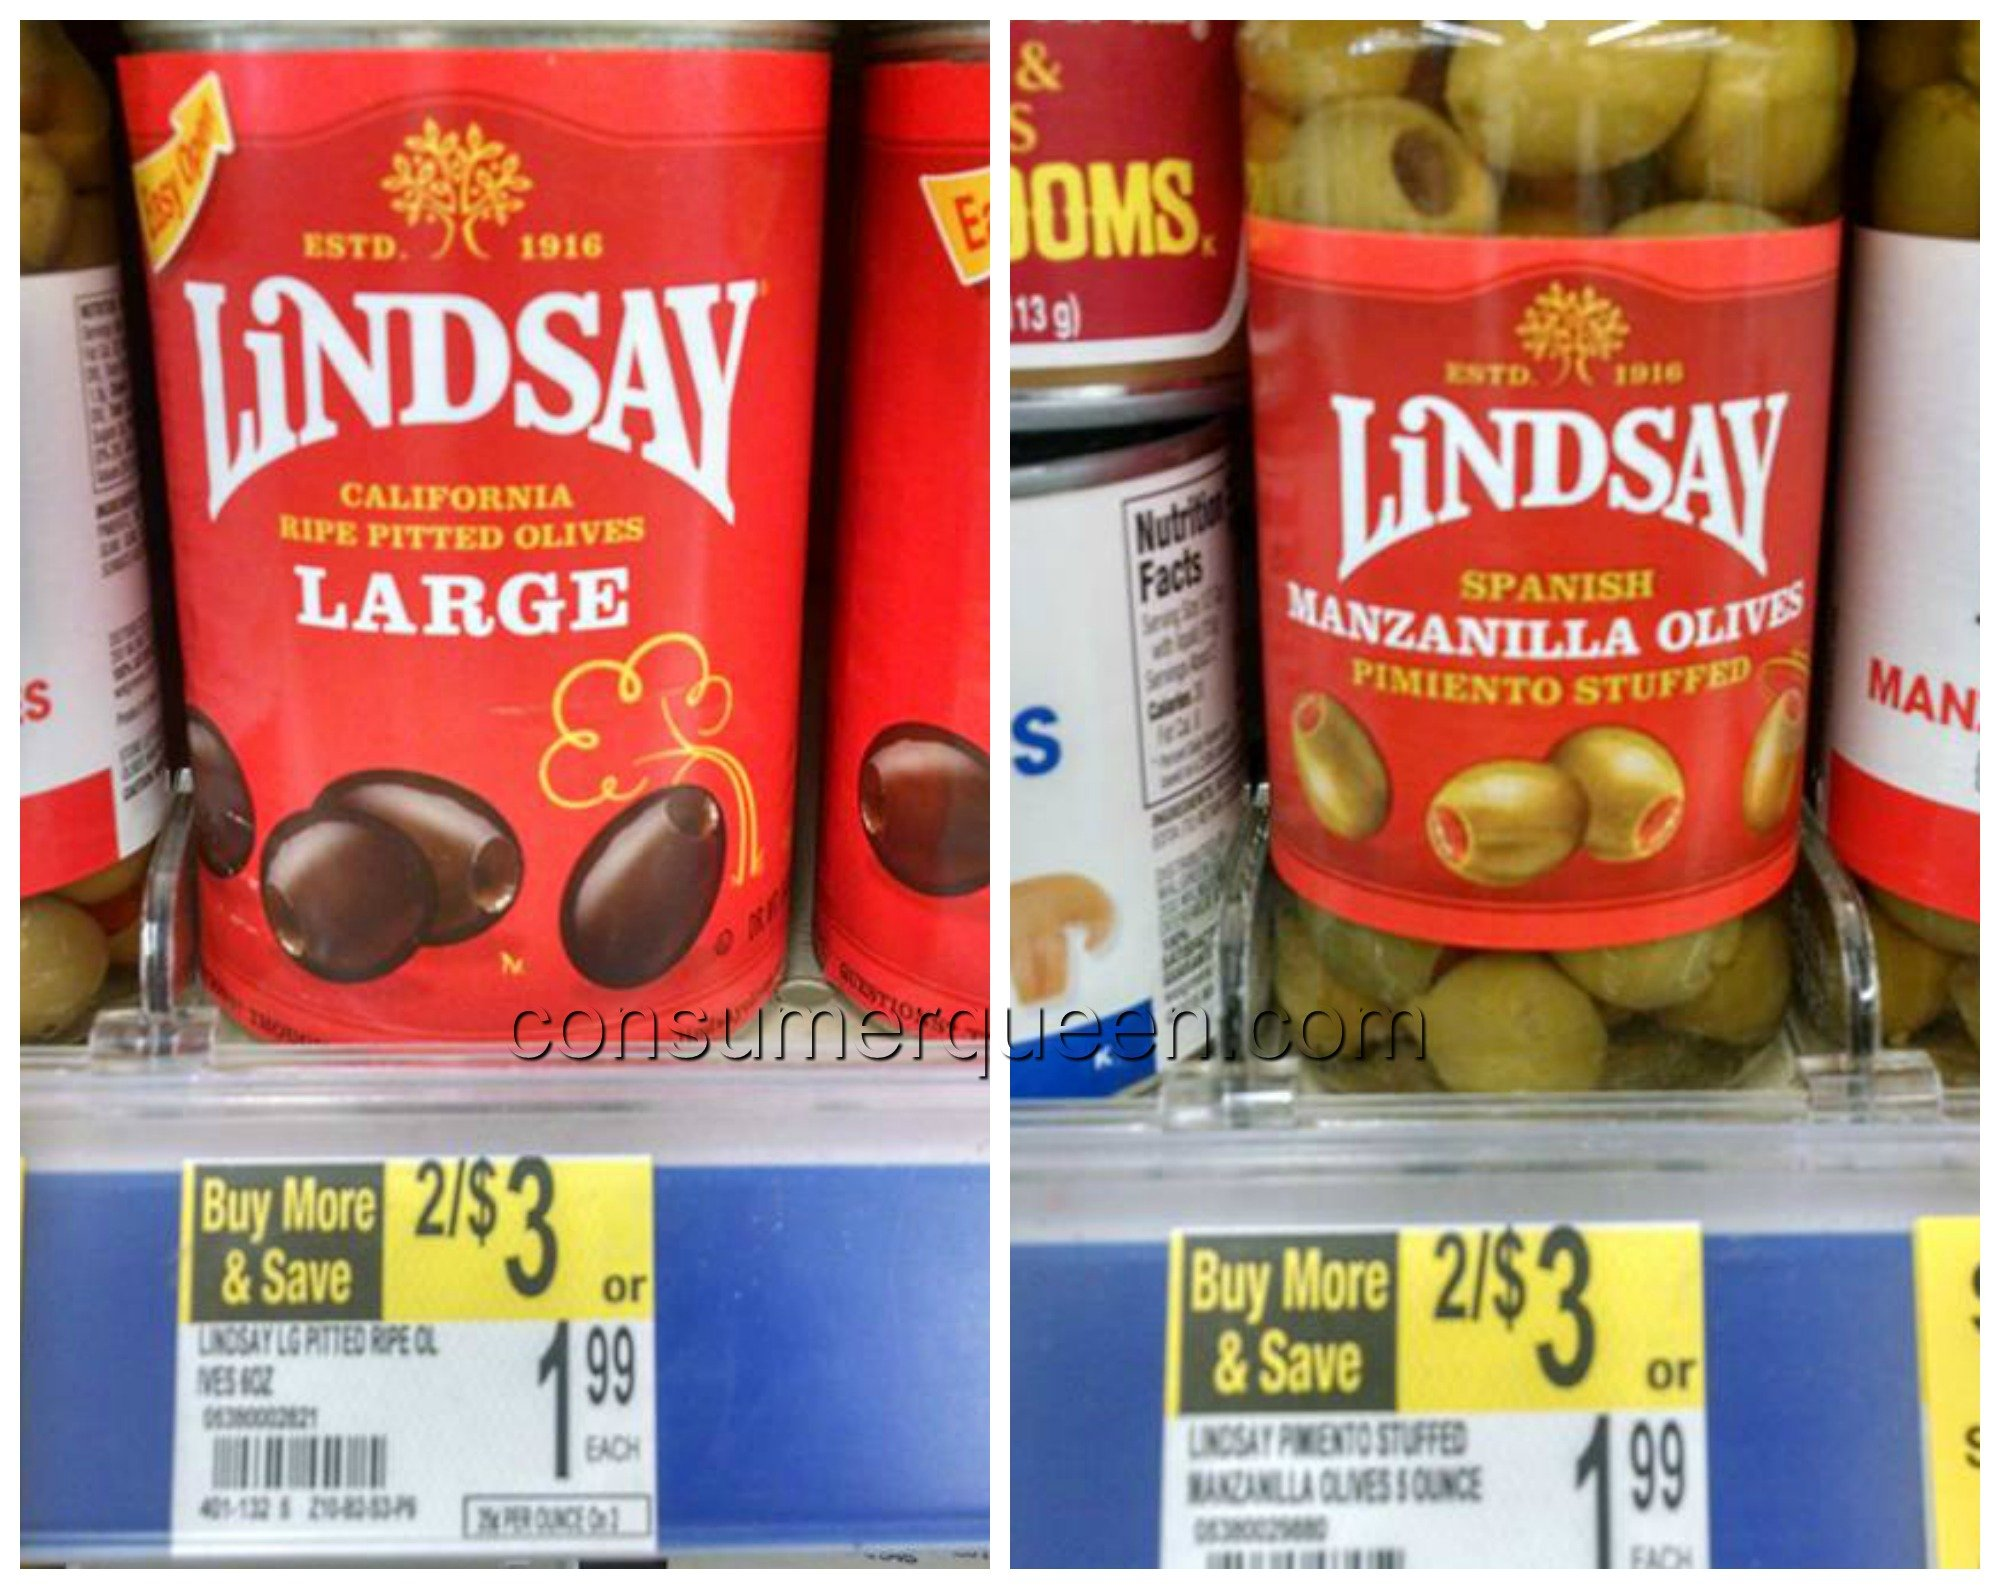 Lindsay Extra Large Black Pitted Olives, 6 oz, 8-count California ripe olivesPitted48 oz. Total Net Weight.